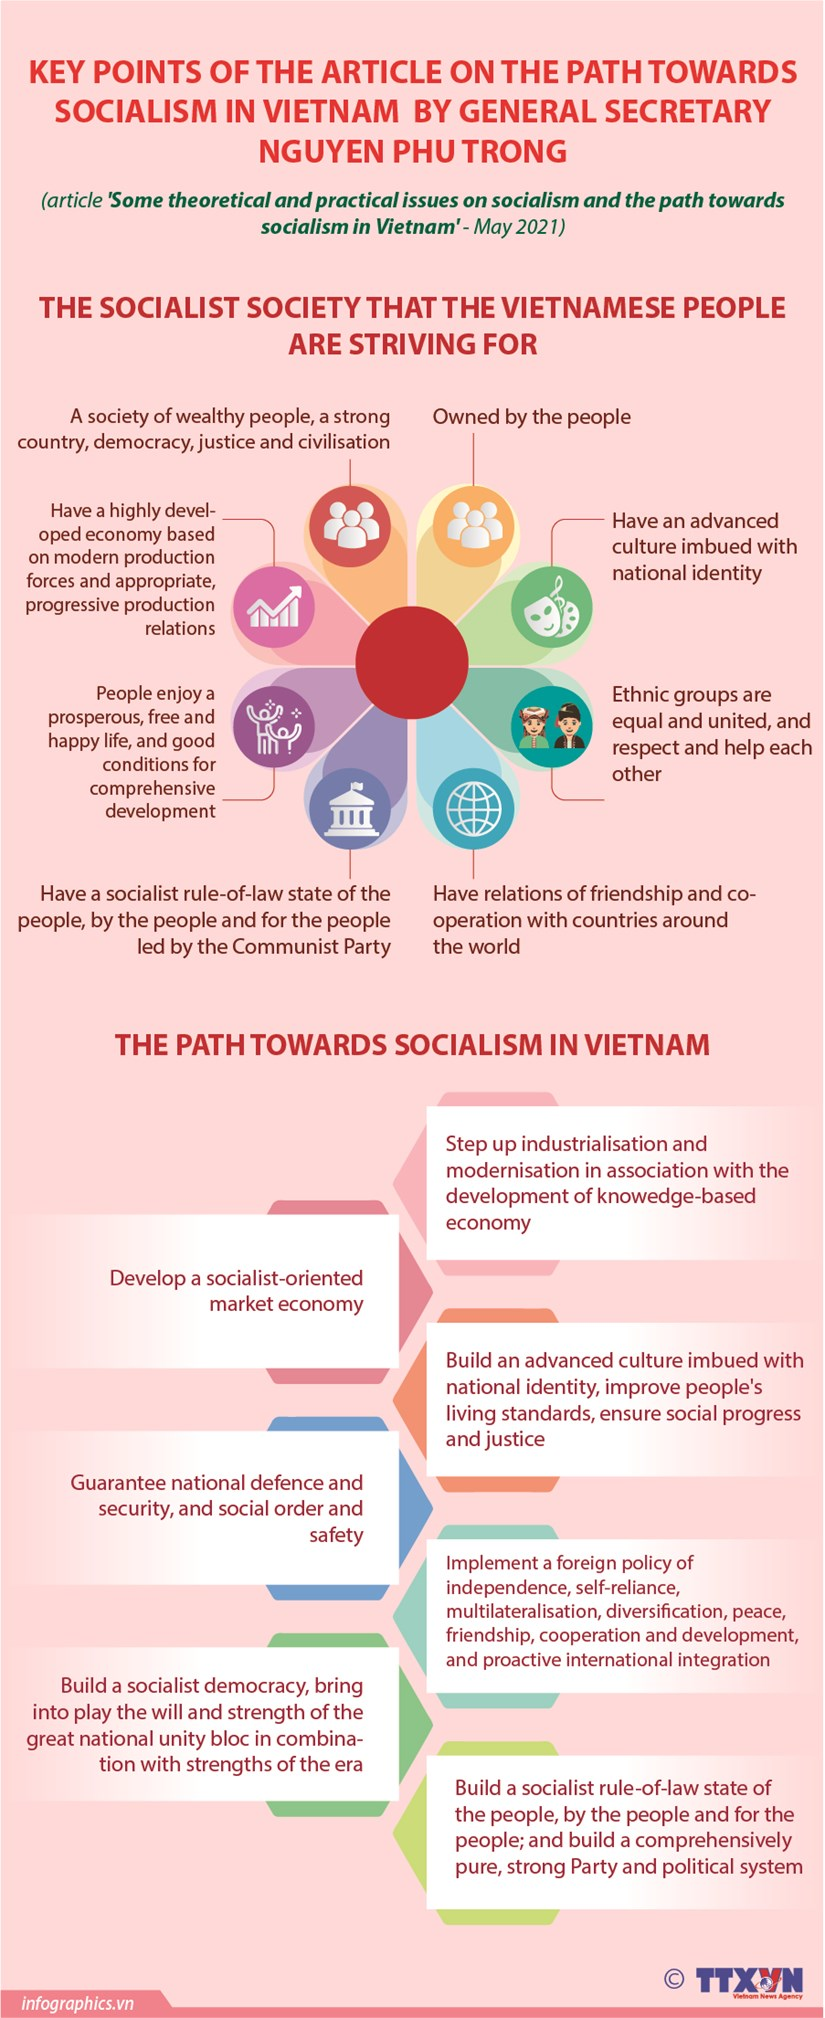 Theoretical and practical issues on socialism and path towards socialism in Vietnam hinh anh 1